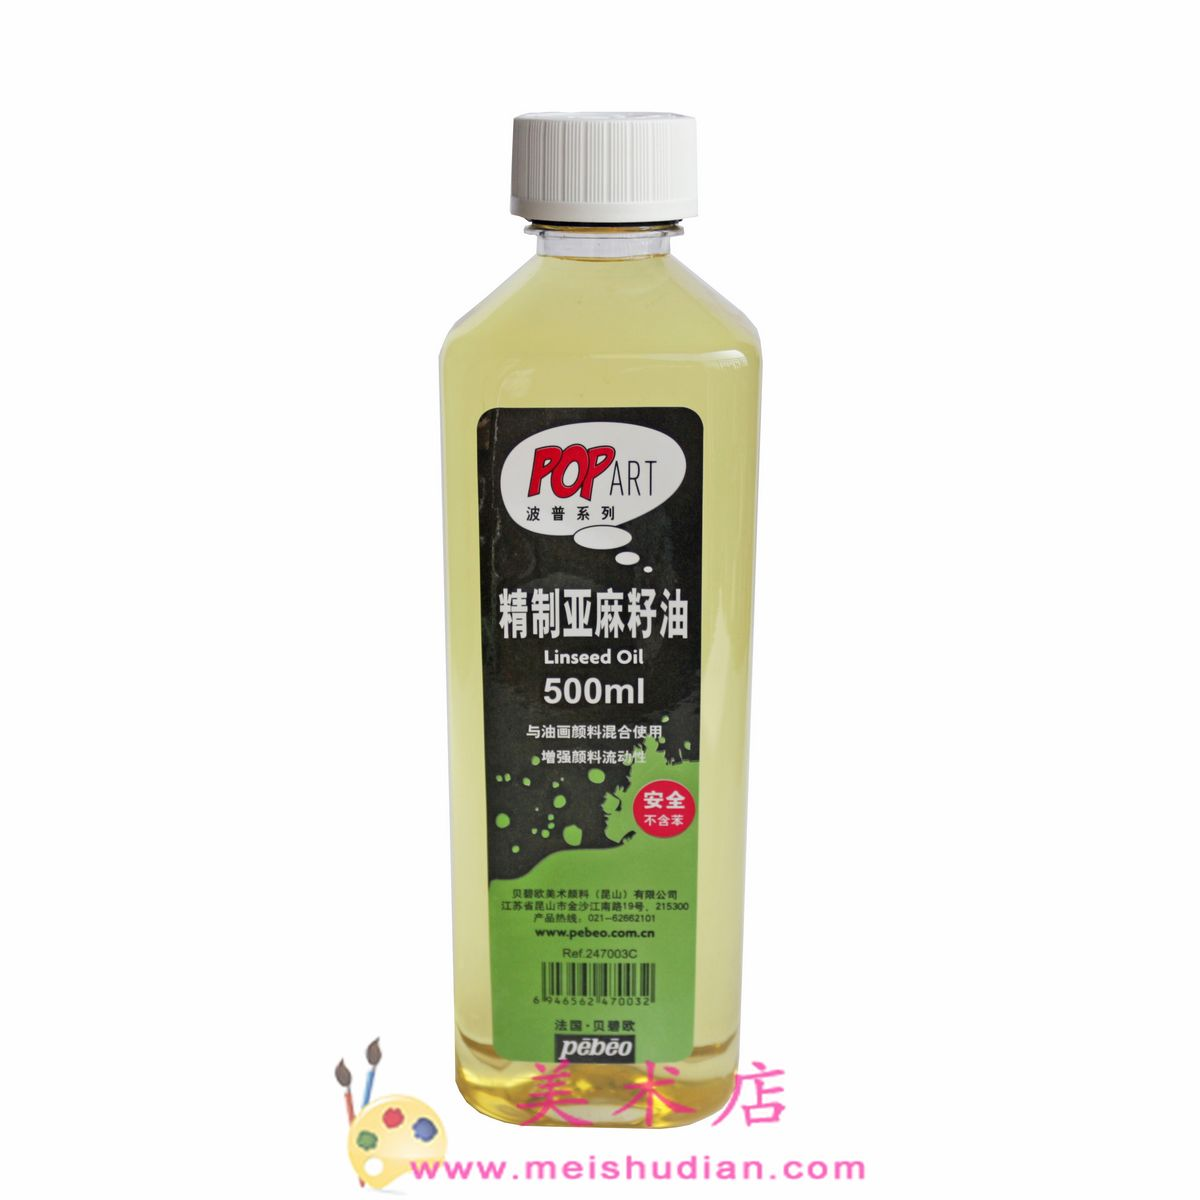 free ship pebeo Pop series oil painting color medium refined linseed oil painting auxiliary 500ml master level studentfree ship pebeo Pop series oil painting color medium refined linseed oil painting auxiliary 500ml master level student